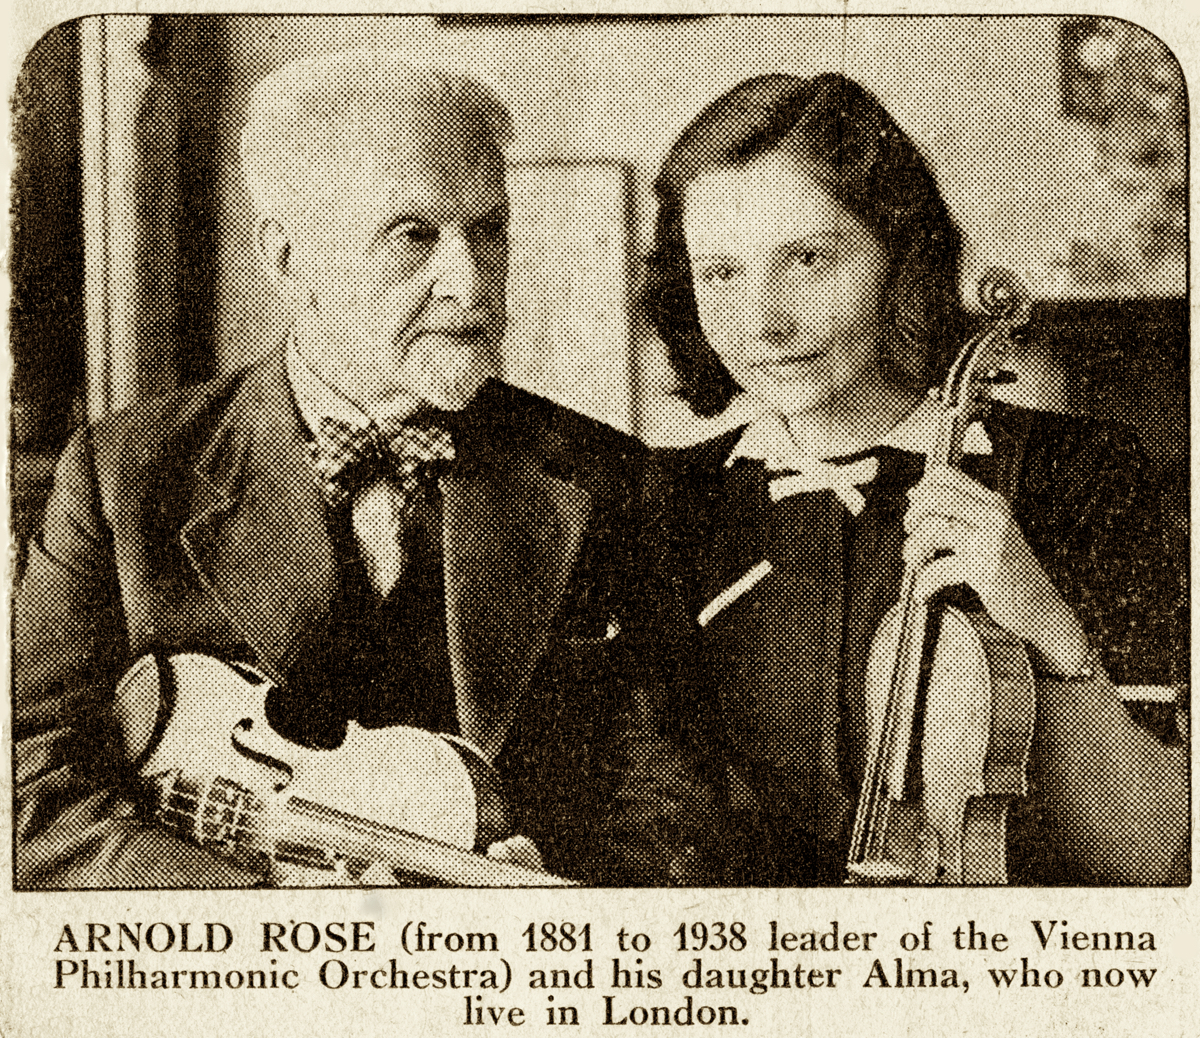 Newspaper clipping of Arnold and Alma Rosé after their escape from Vienna<br>Photo: Gustav Mahler–Alfred Rosé Collection, Music Library, Western University, London, Canada